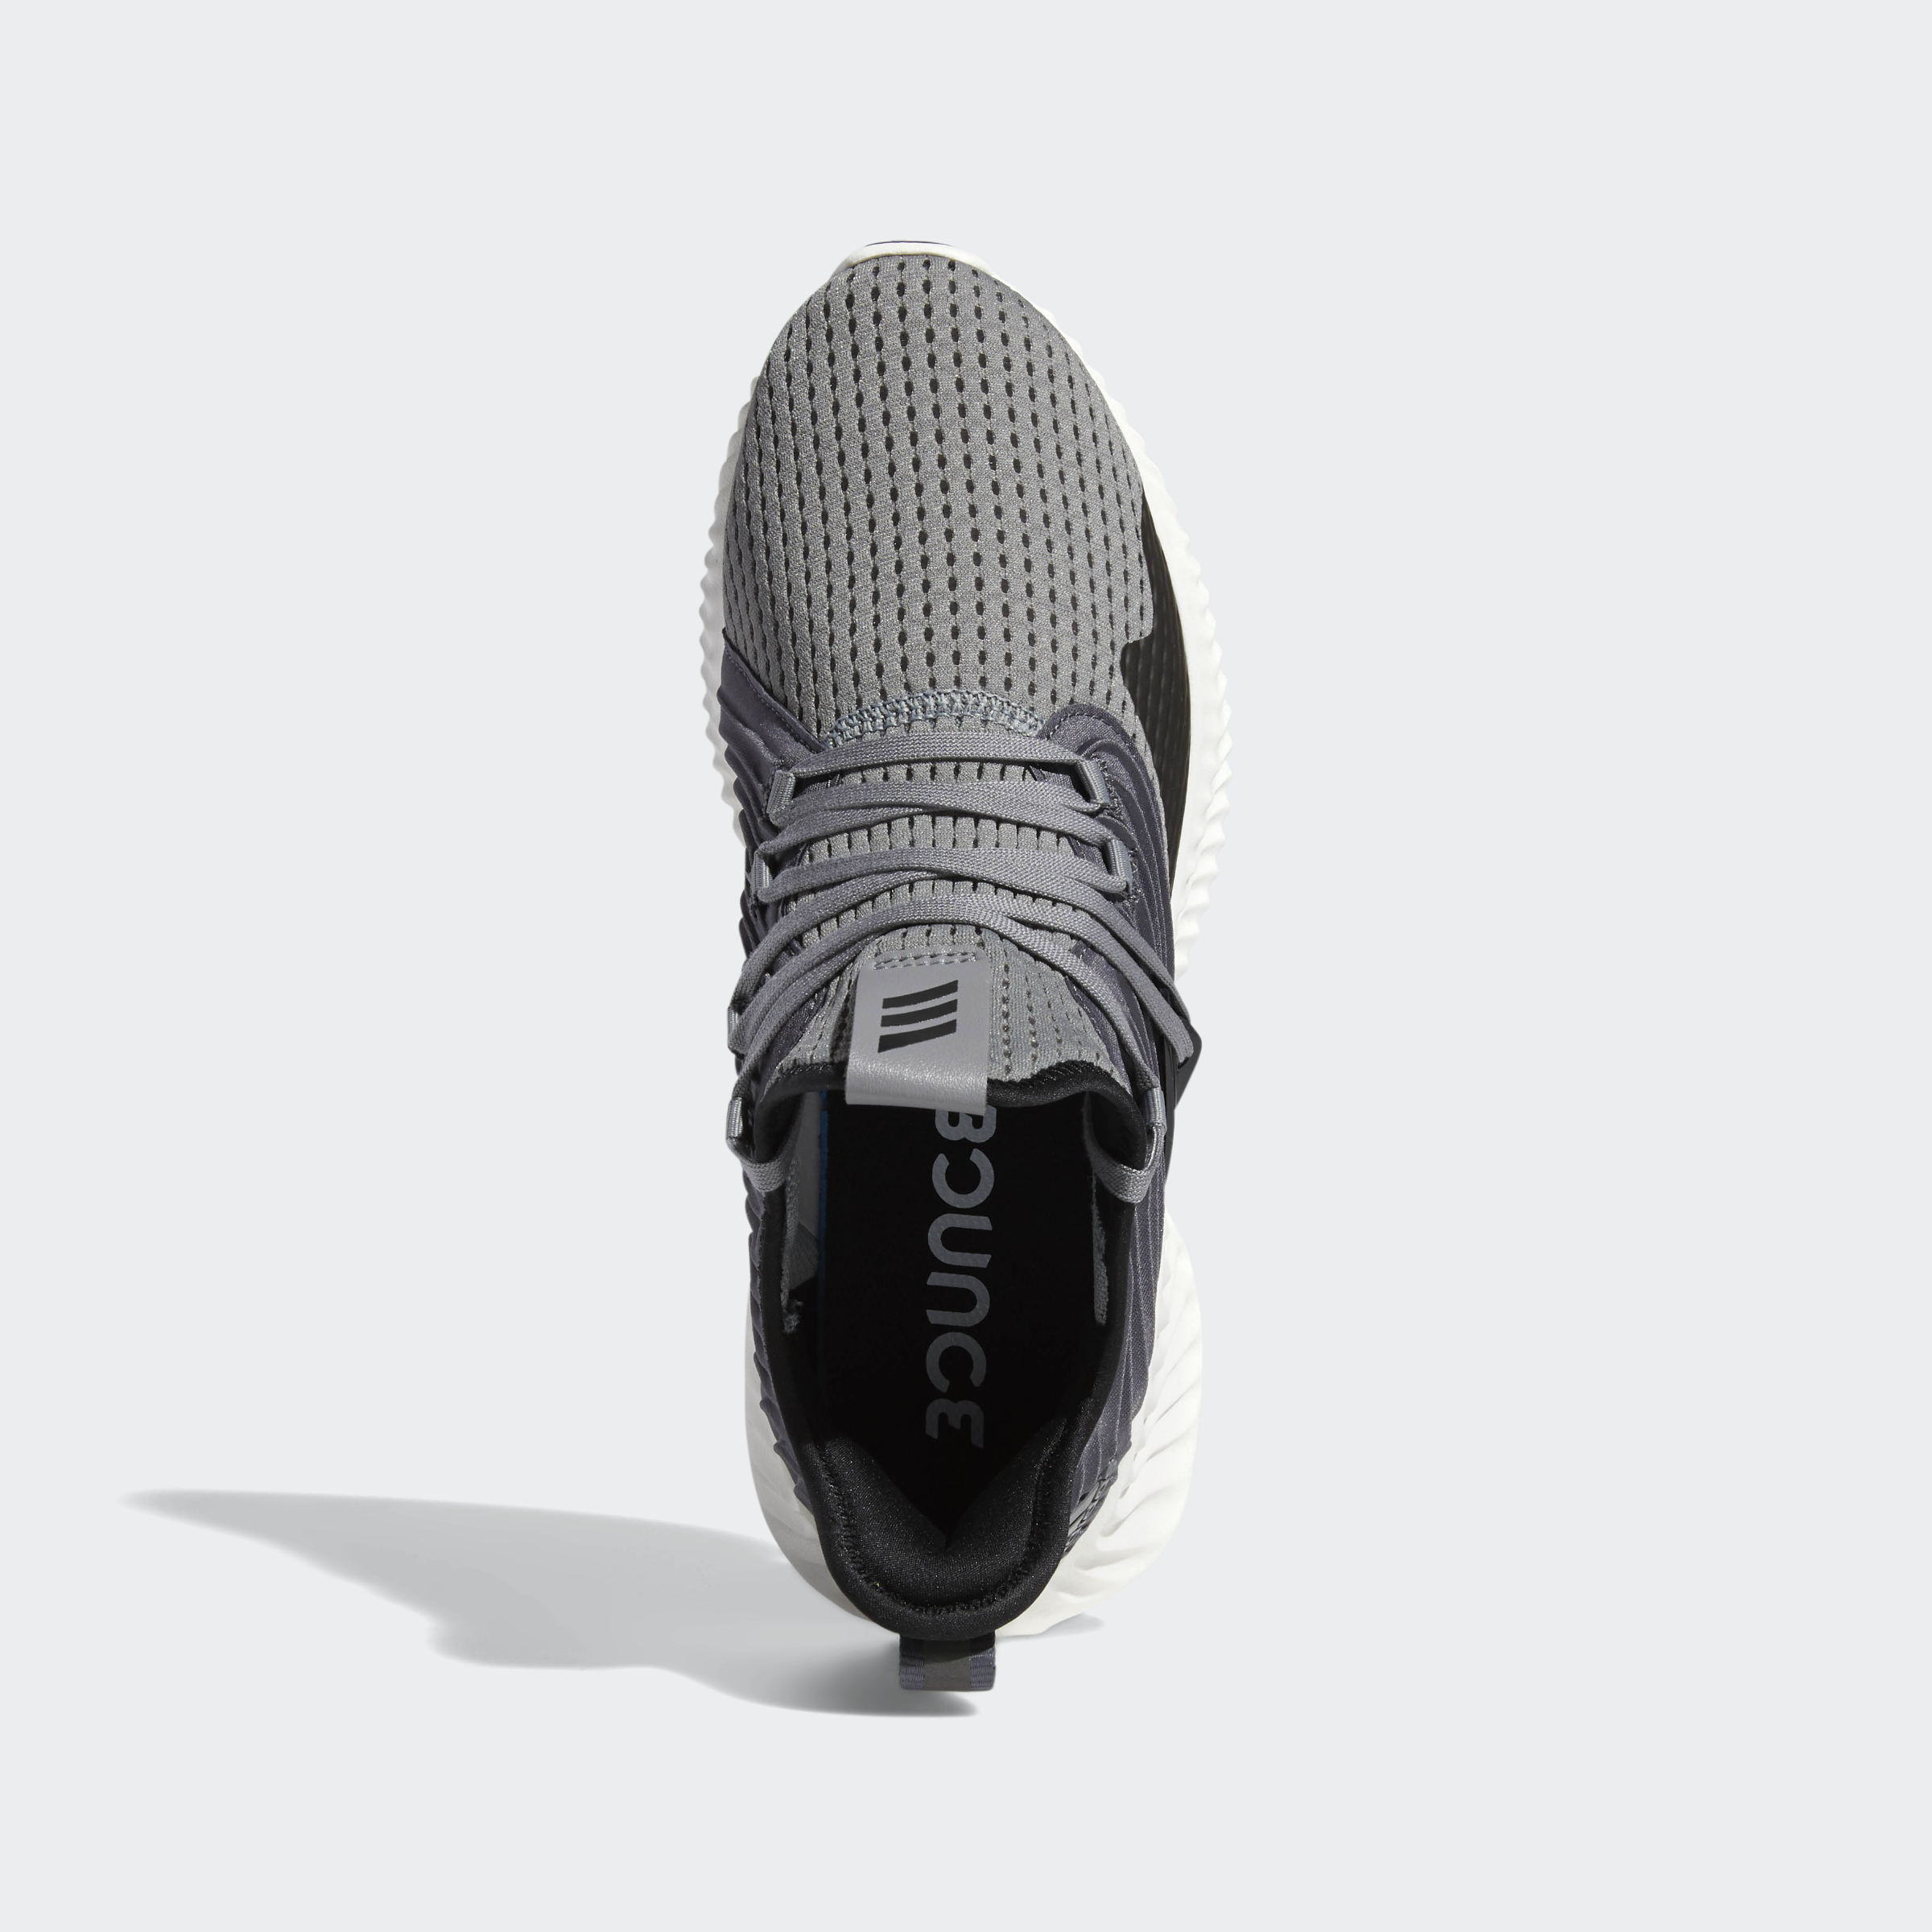 adidas-Alphabounce-Instinct-Clima-Shoes-Men-039-s-Athletic-amp-Sneakers miniature 16